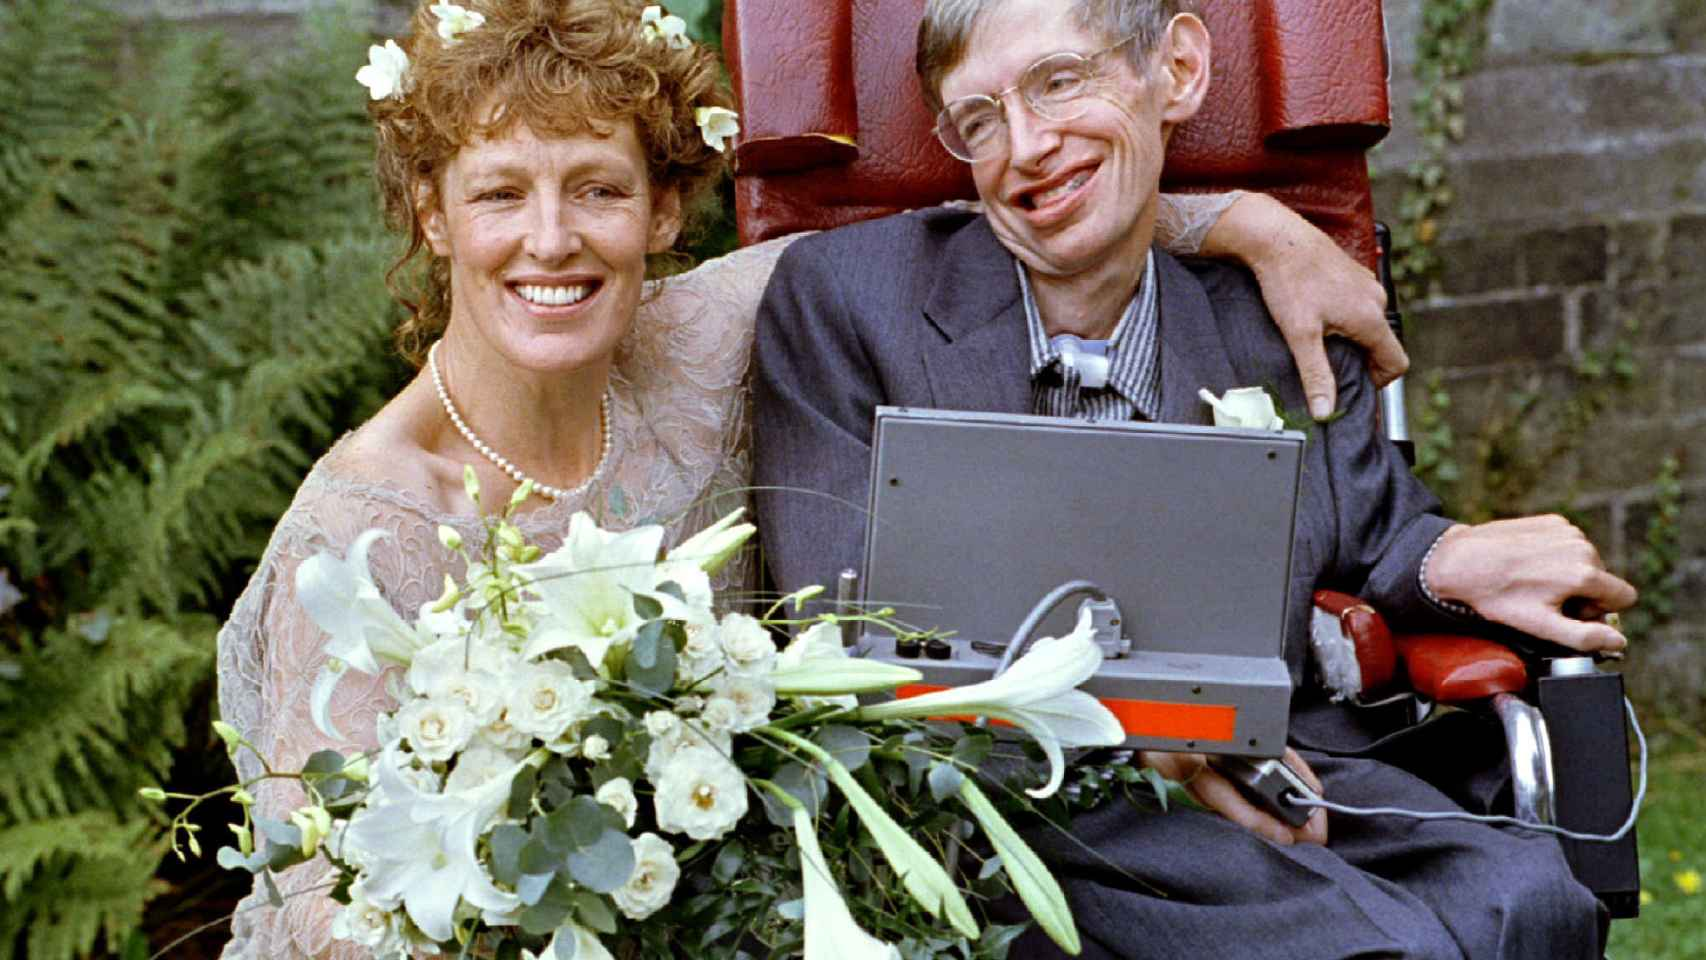 FILE PHOTO: Stephen Hawking and his new bride Elaine Mason pose for pictures after the blessing of their wedding at St. Barnabus Church